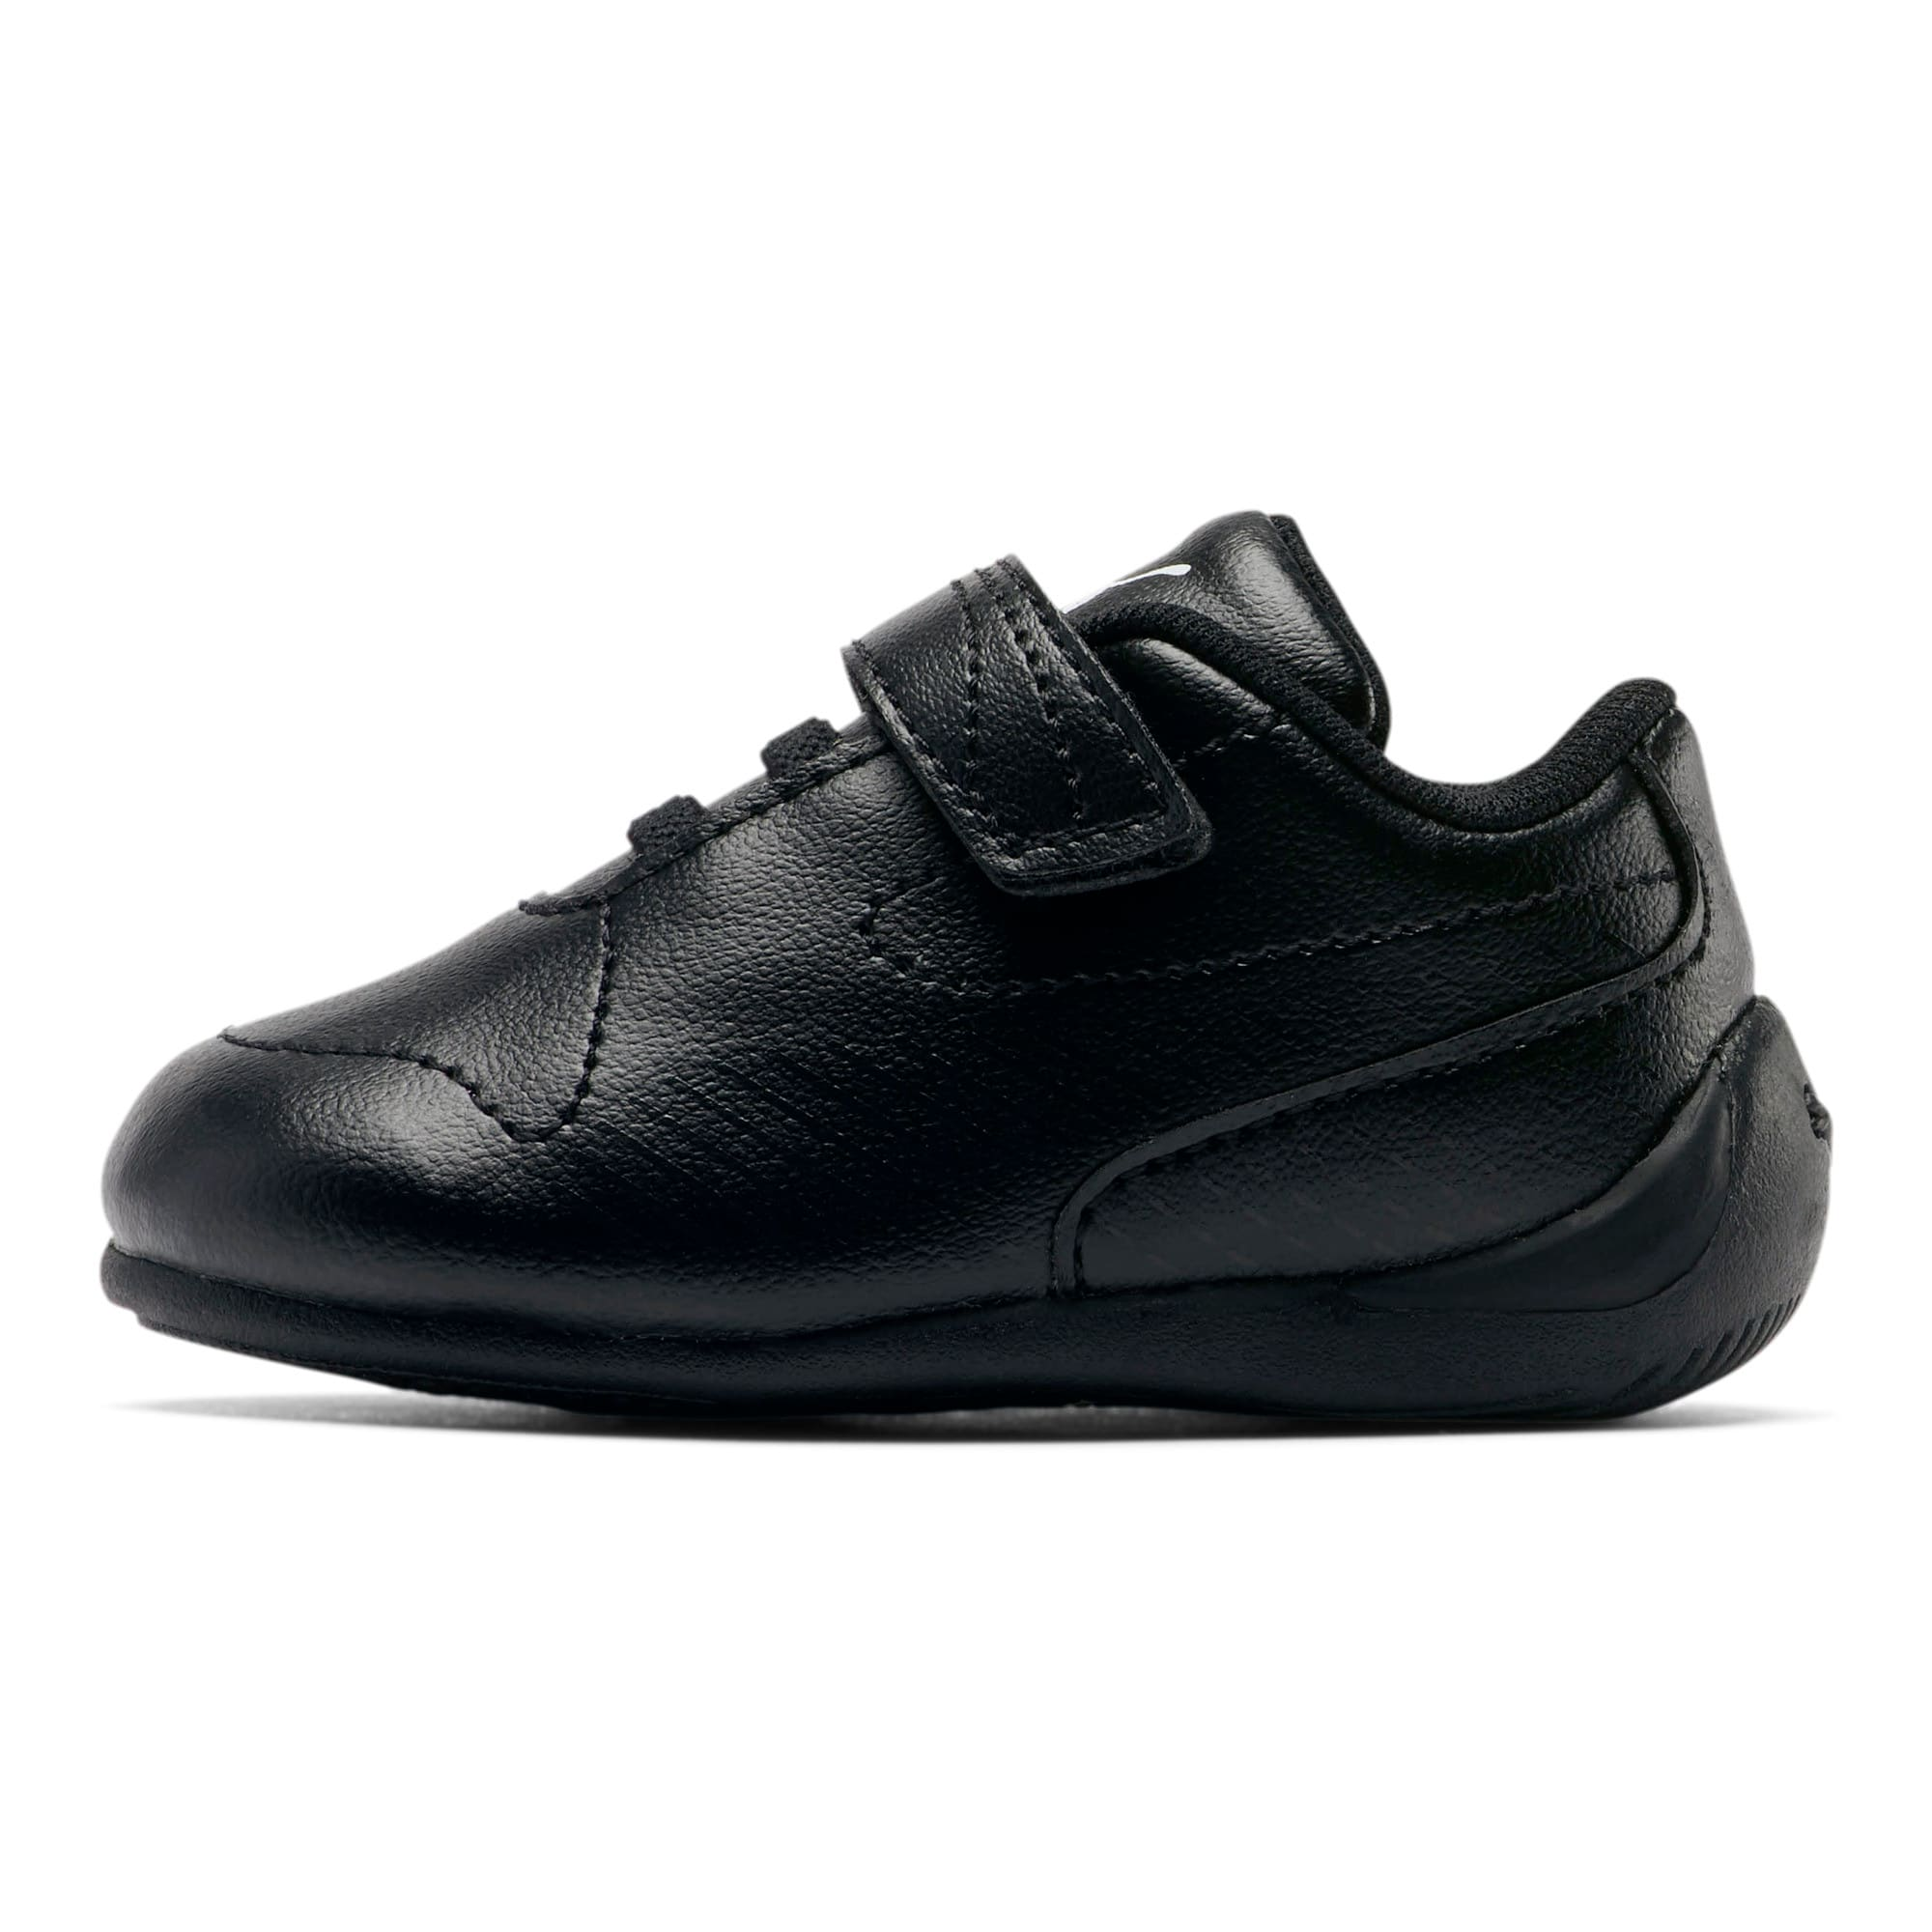 Thumbnail 1 of Drift Cat 7S Ultra Toddler Shoes, Puma Black-Puma Black, medium